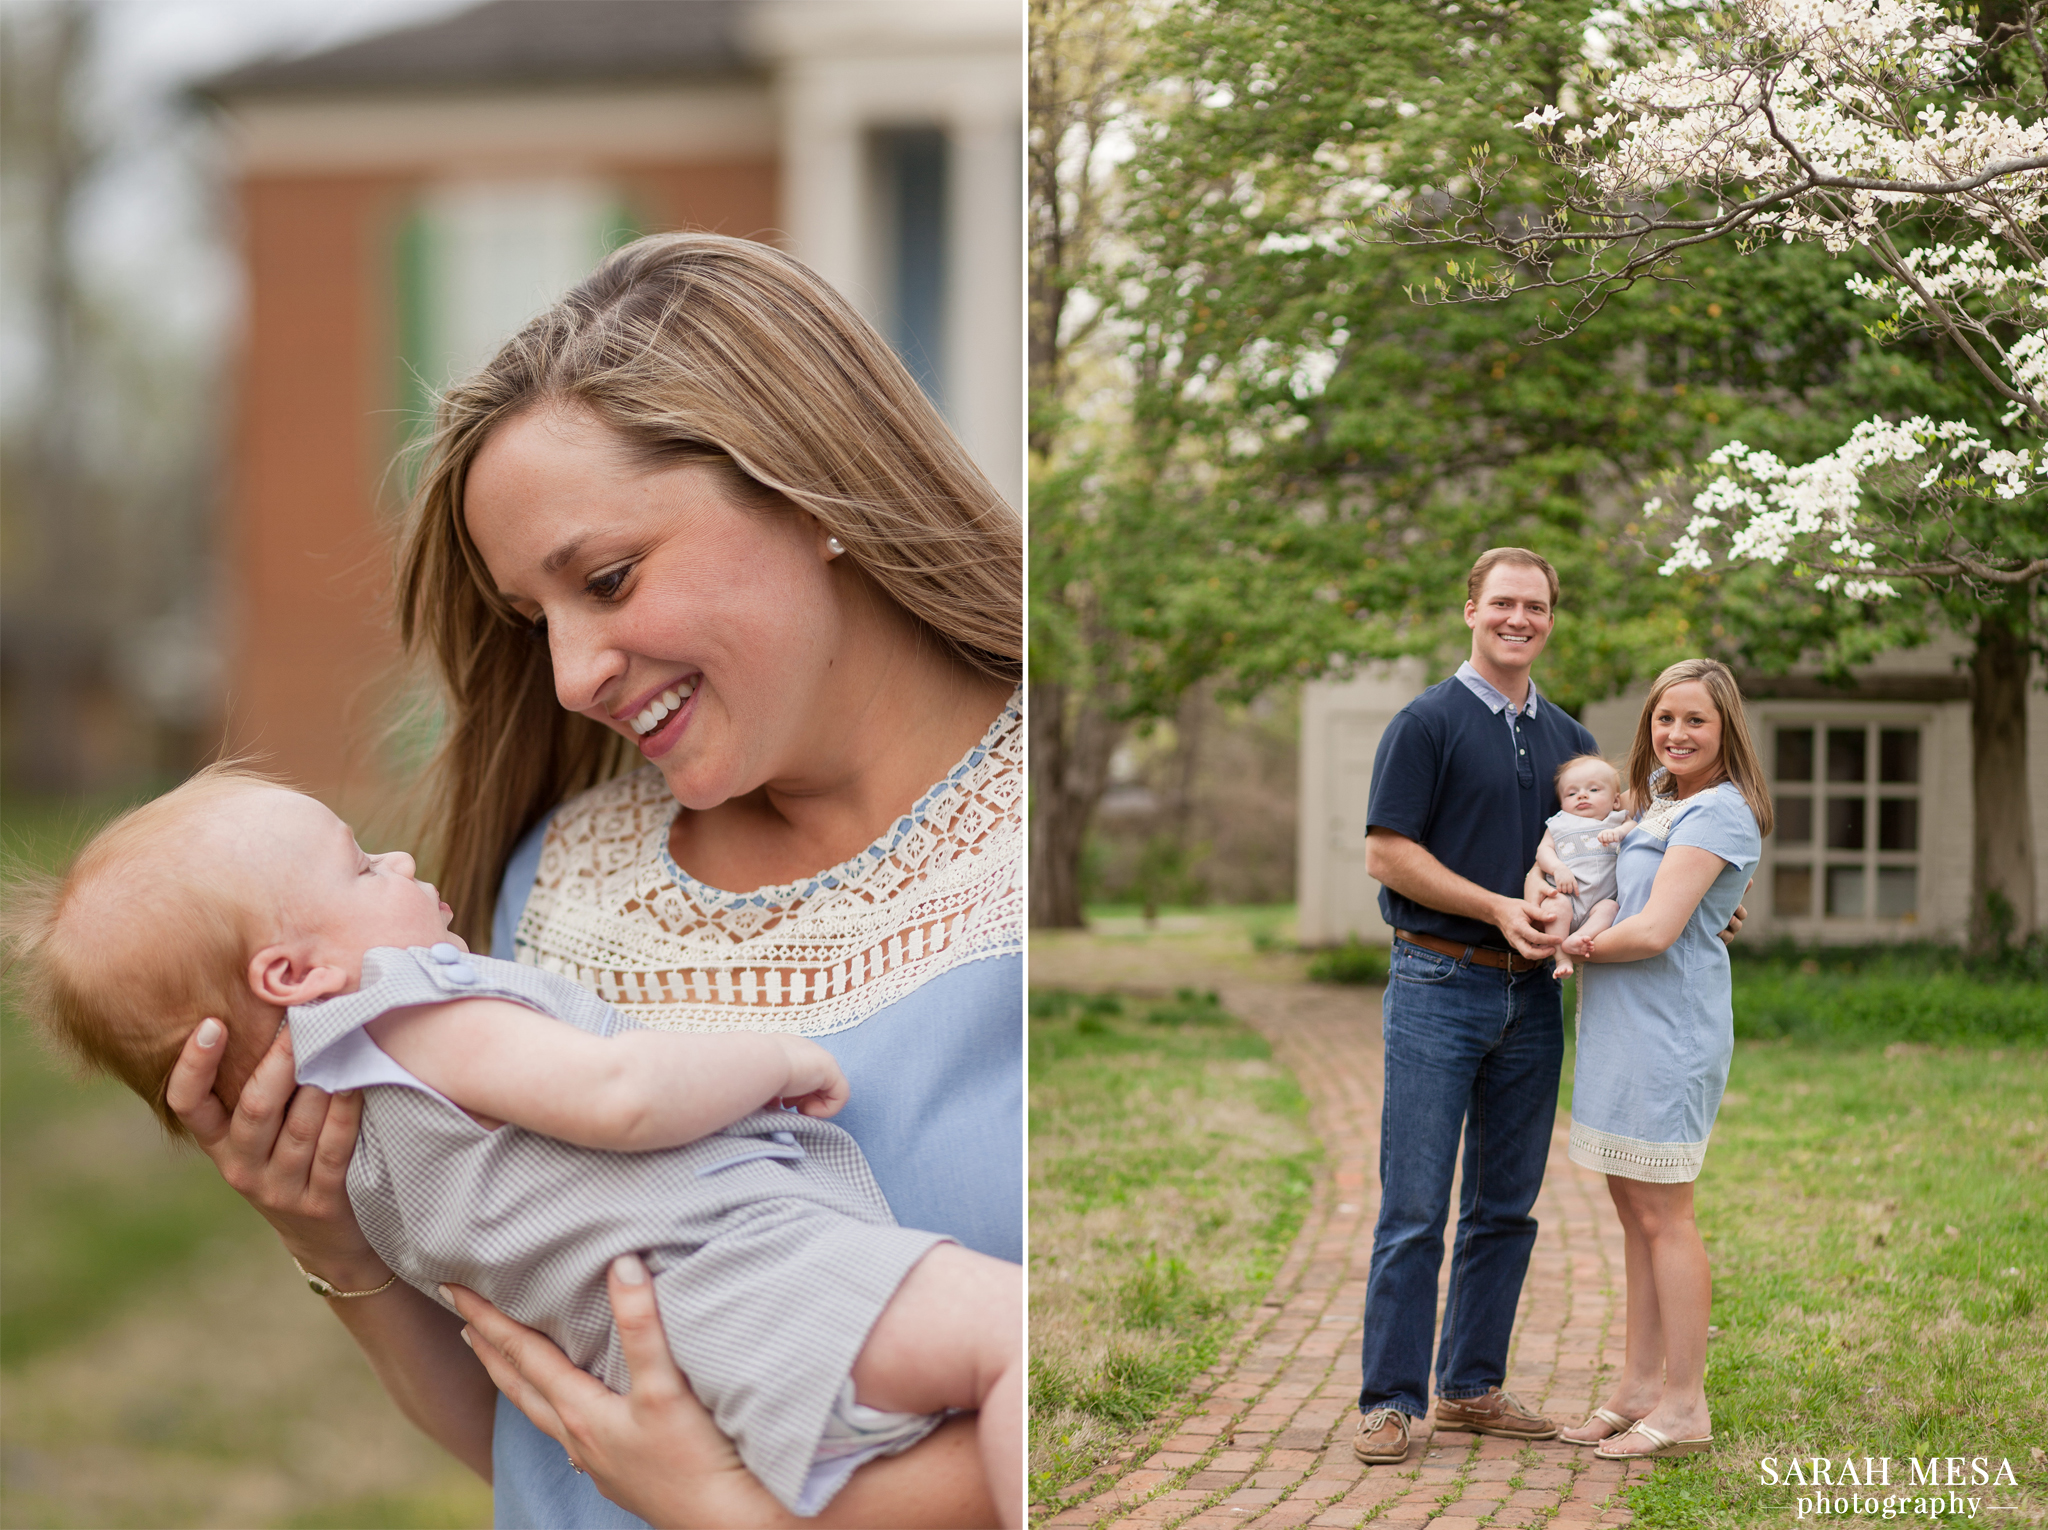 Sarah Mesa Photography | Louisville Family Photographer